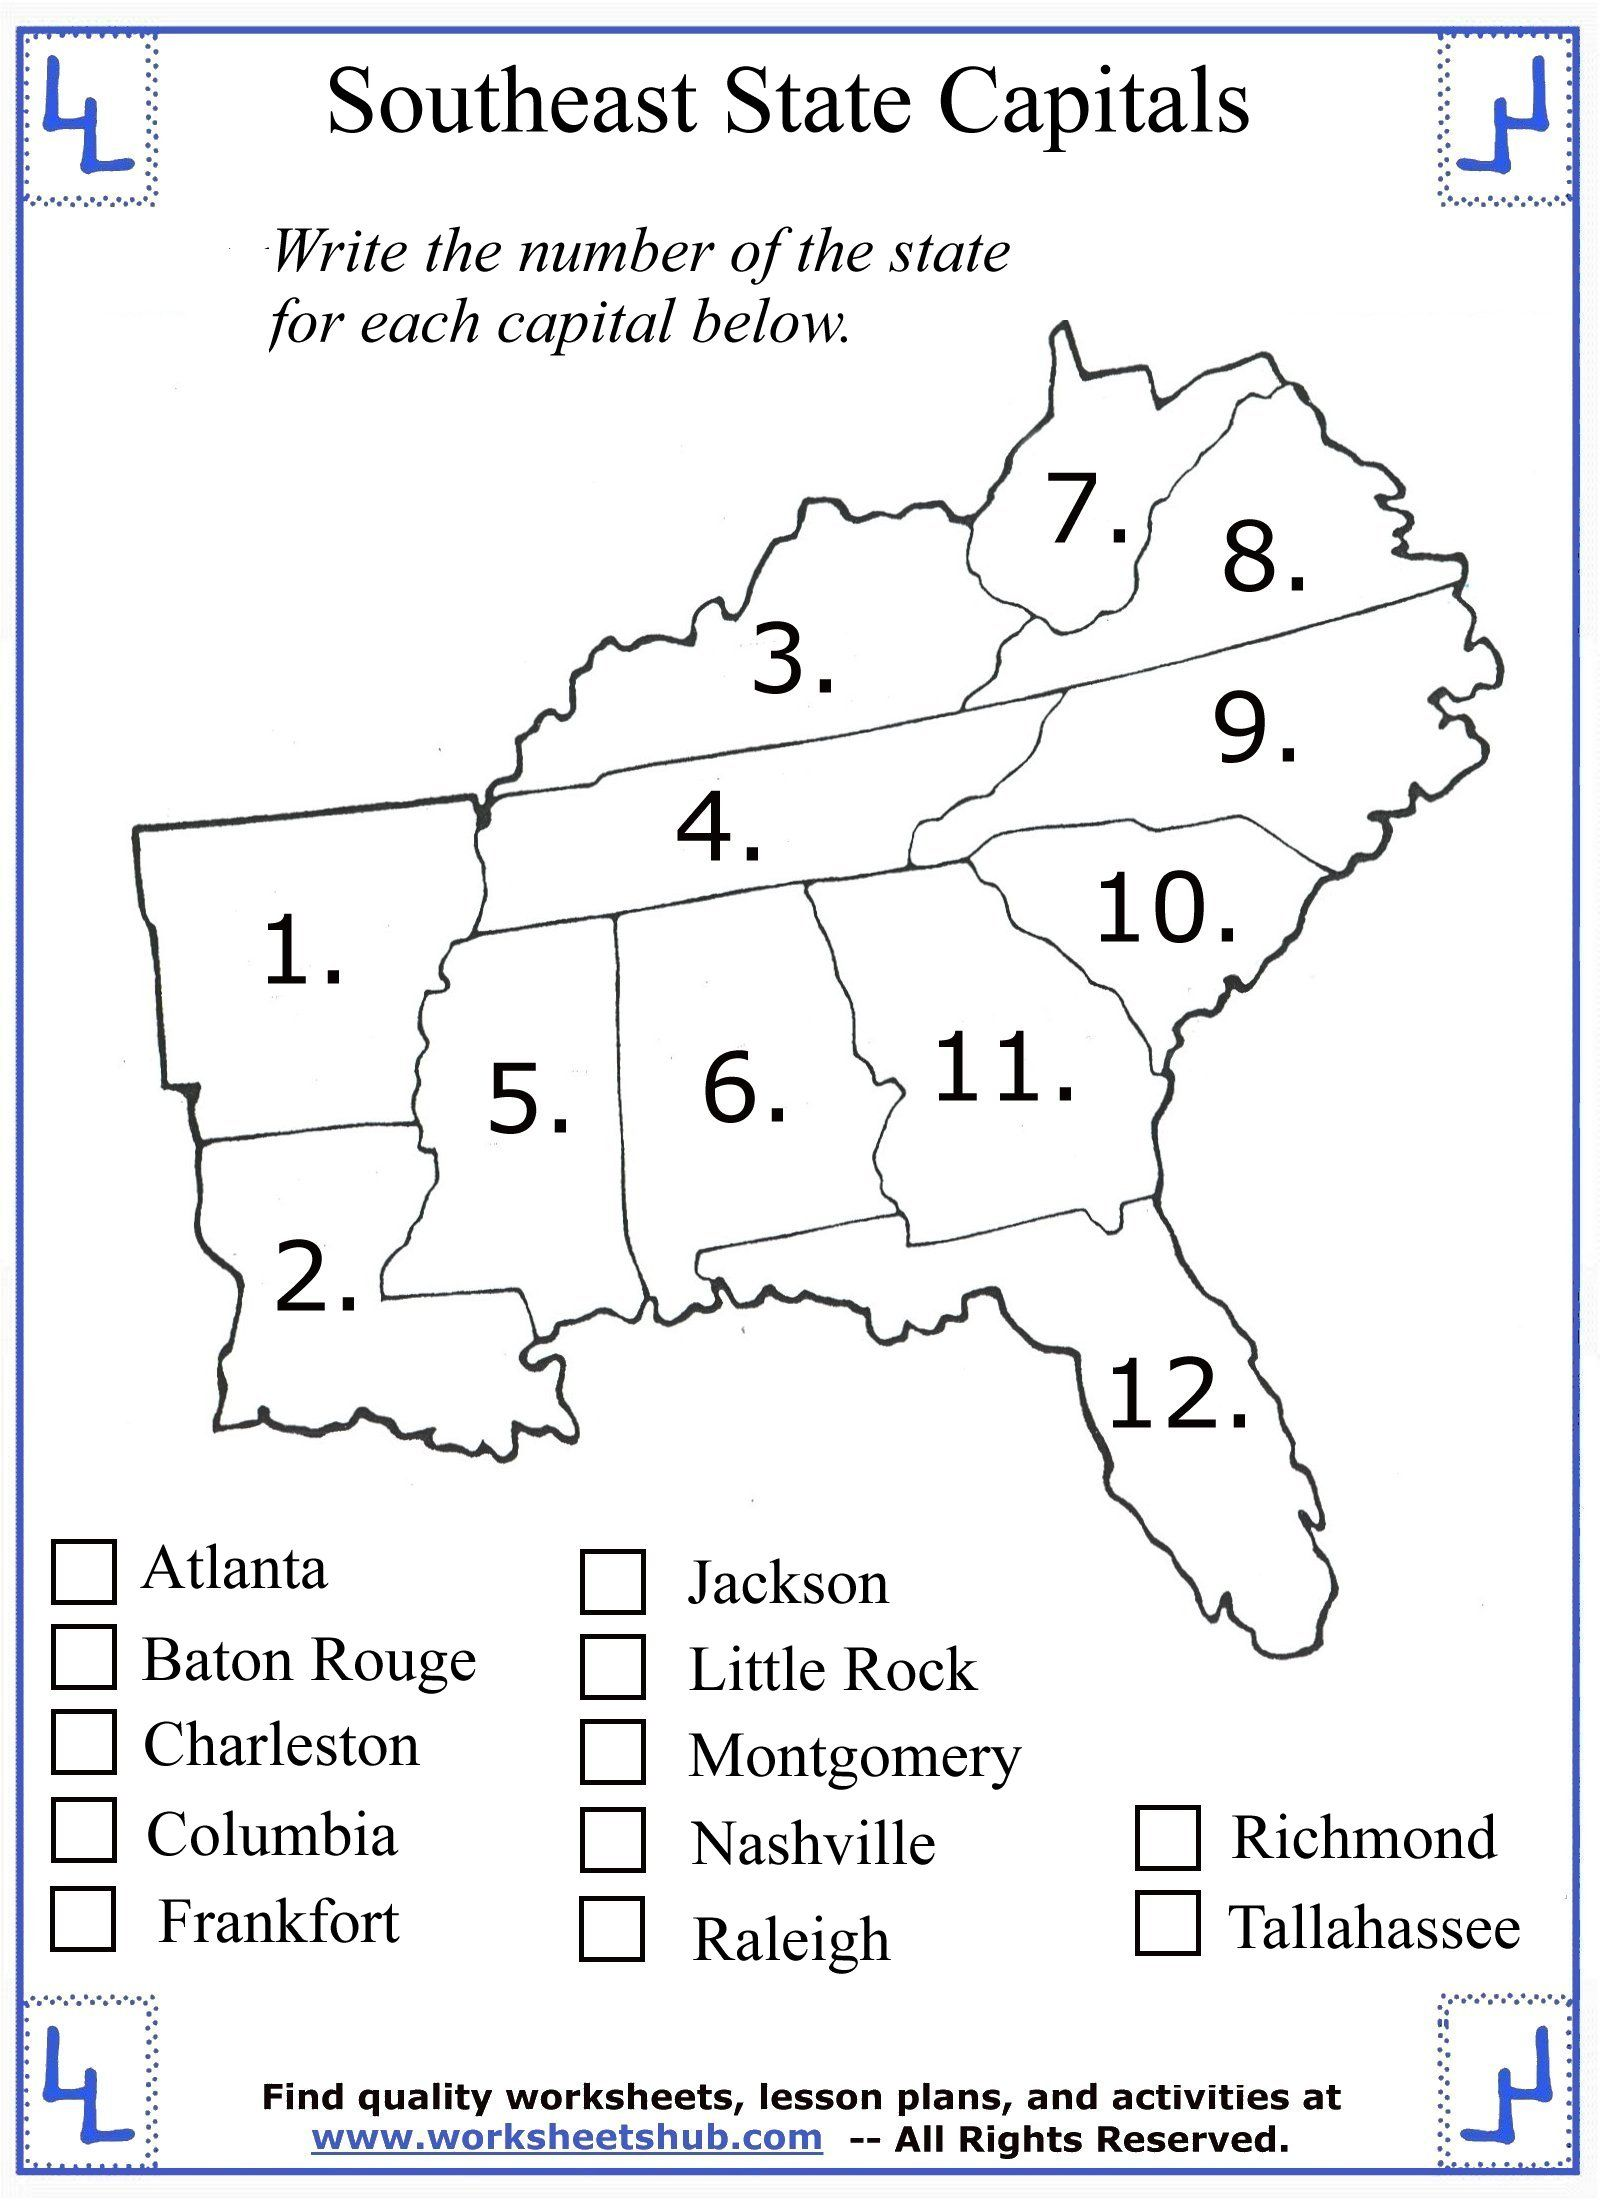 4th Grade Social Studies Southeast State Capitals 01   Social studies  worksheets [ 2200 x 1600 Pixel ]